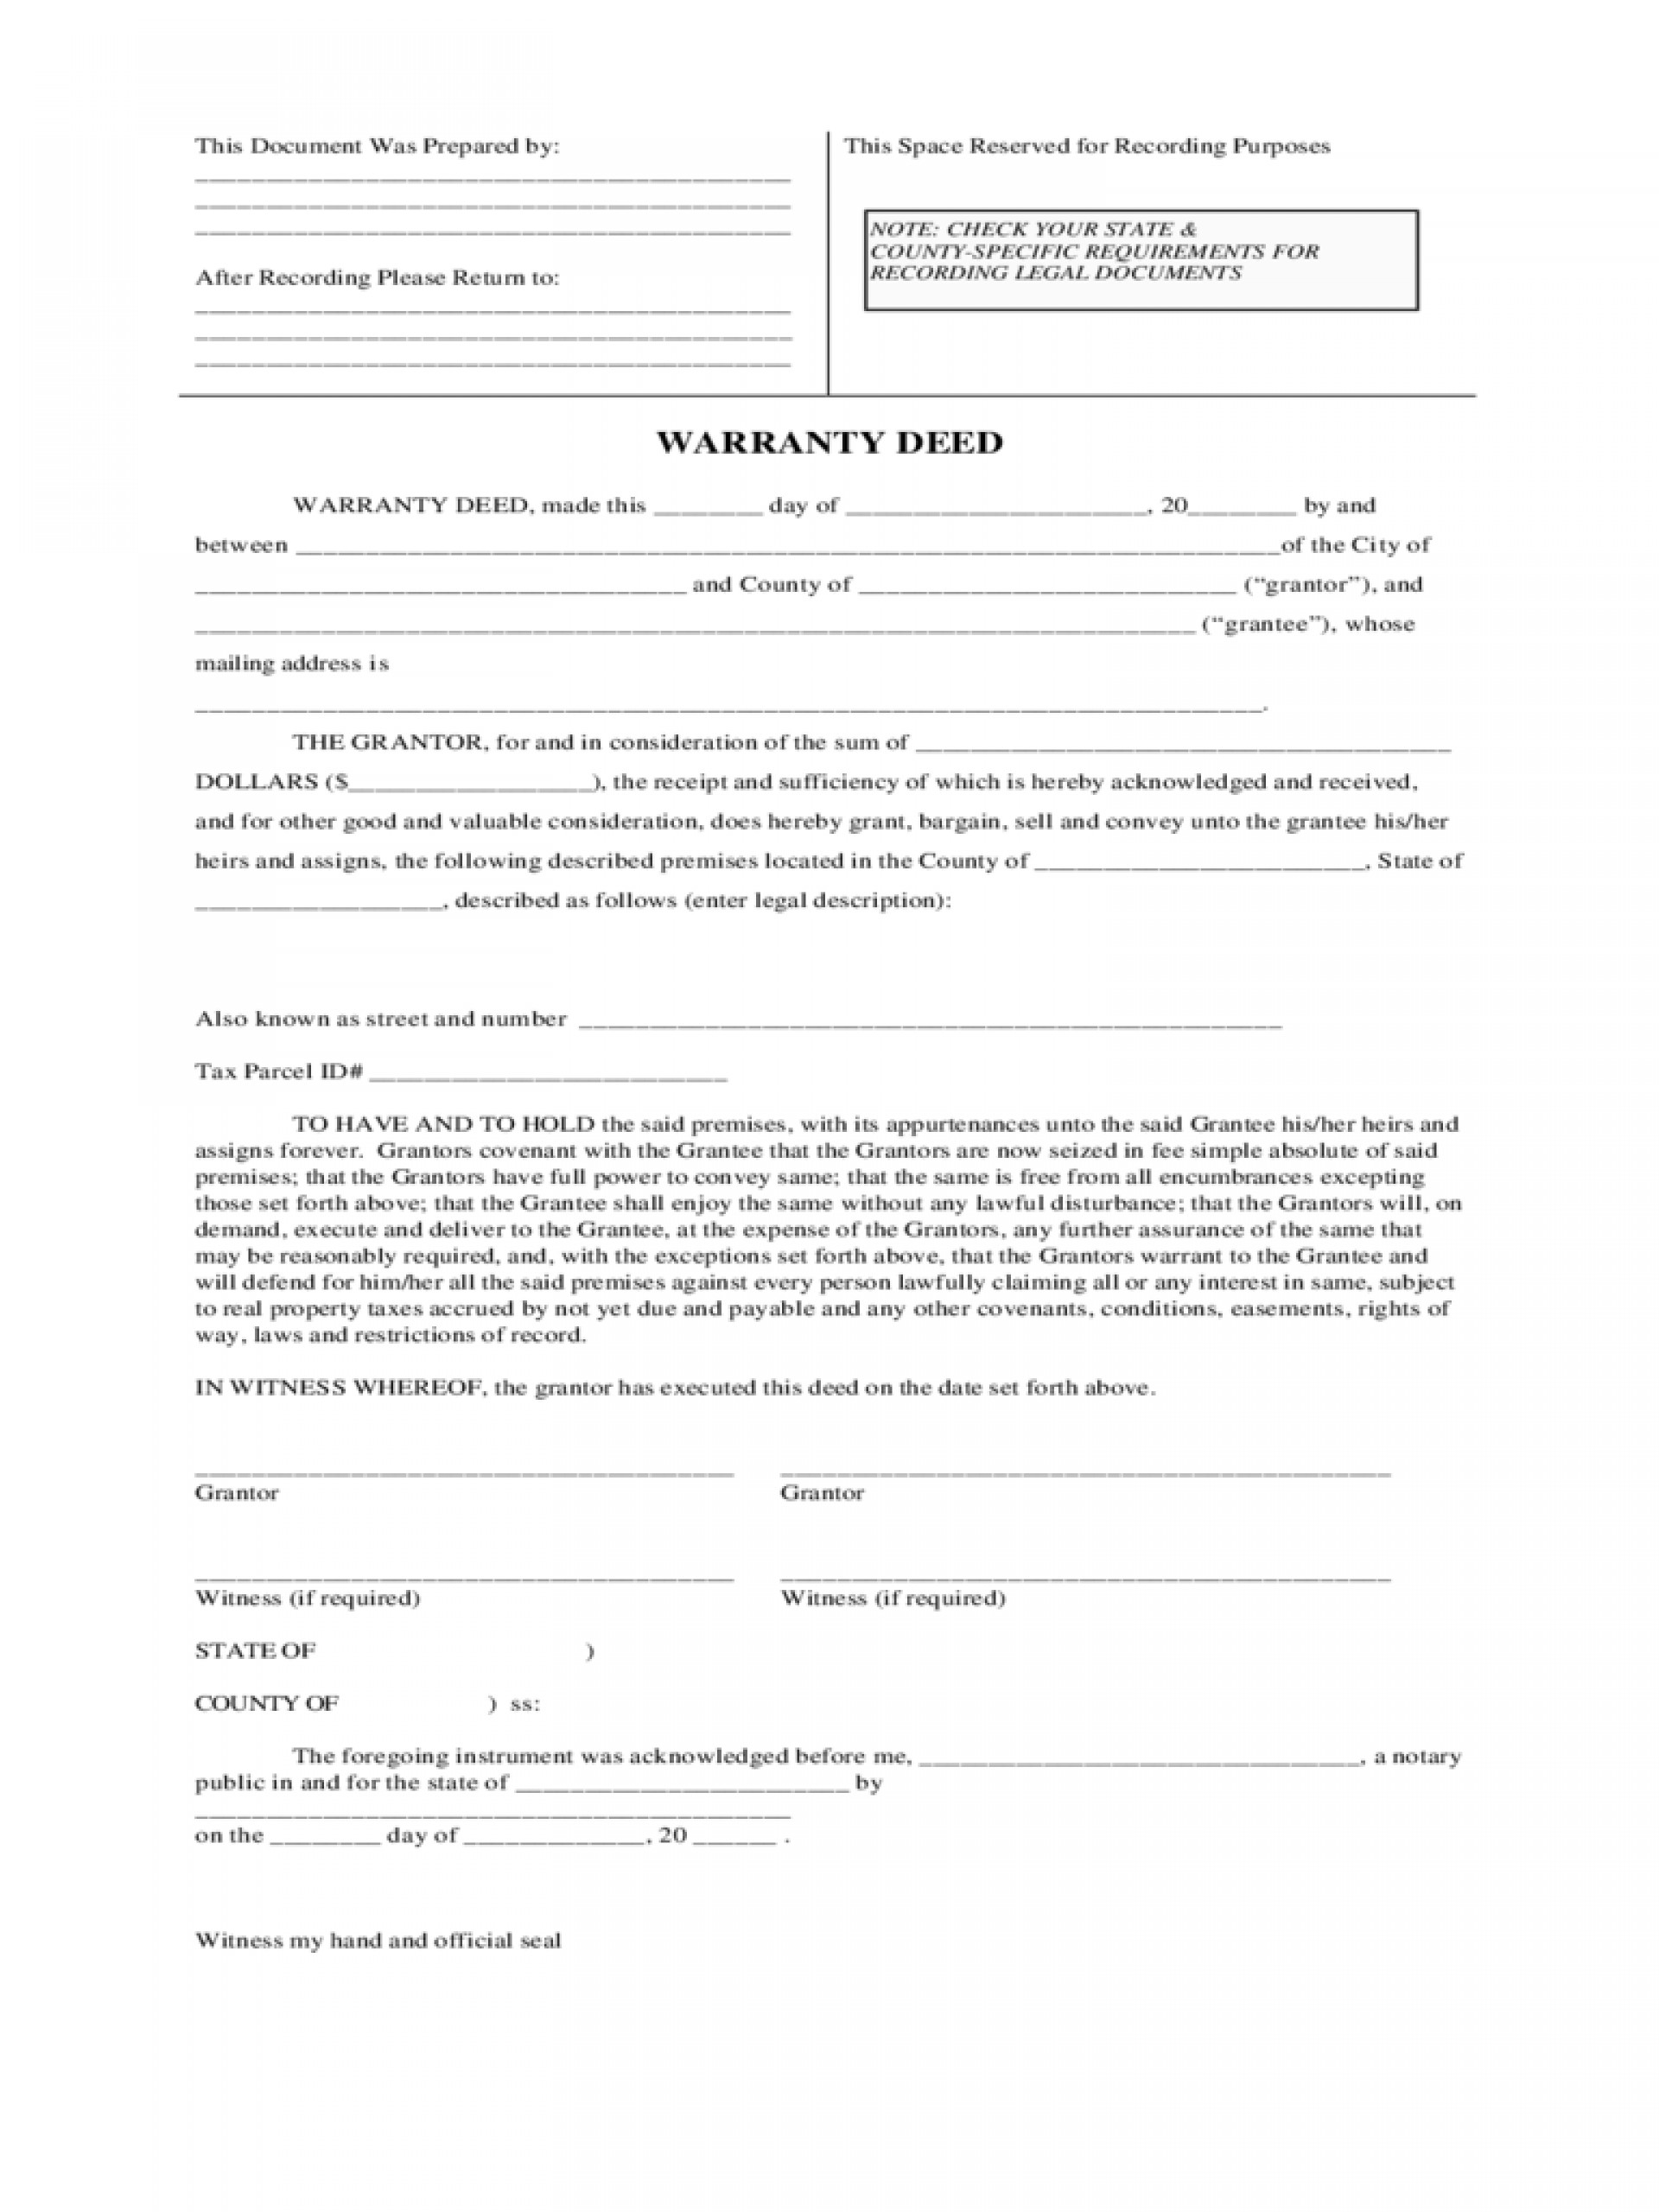 Warranty Deed Template Florida